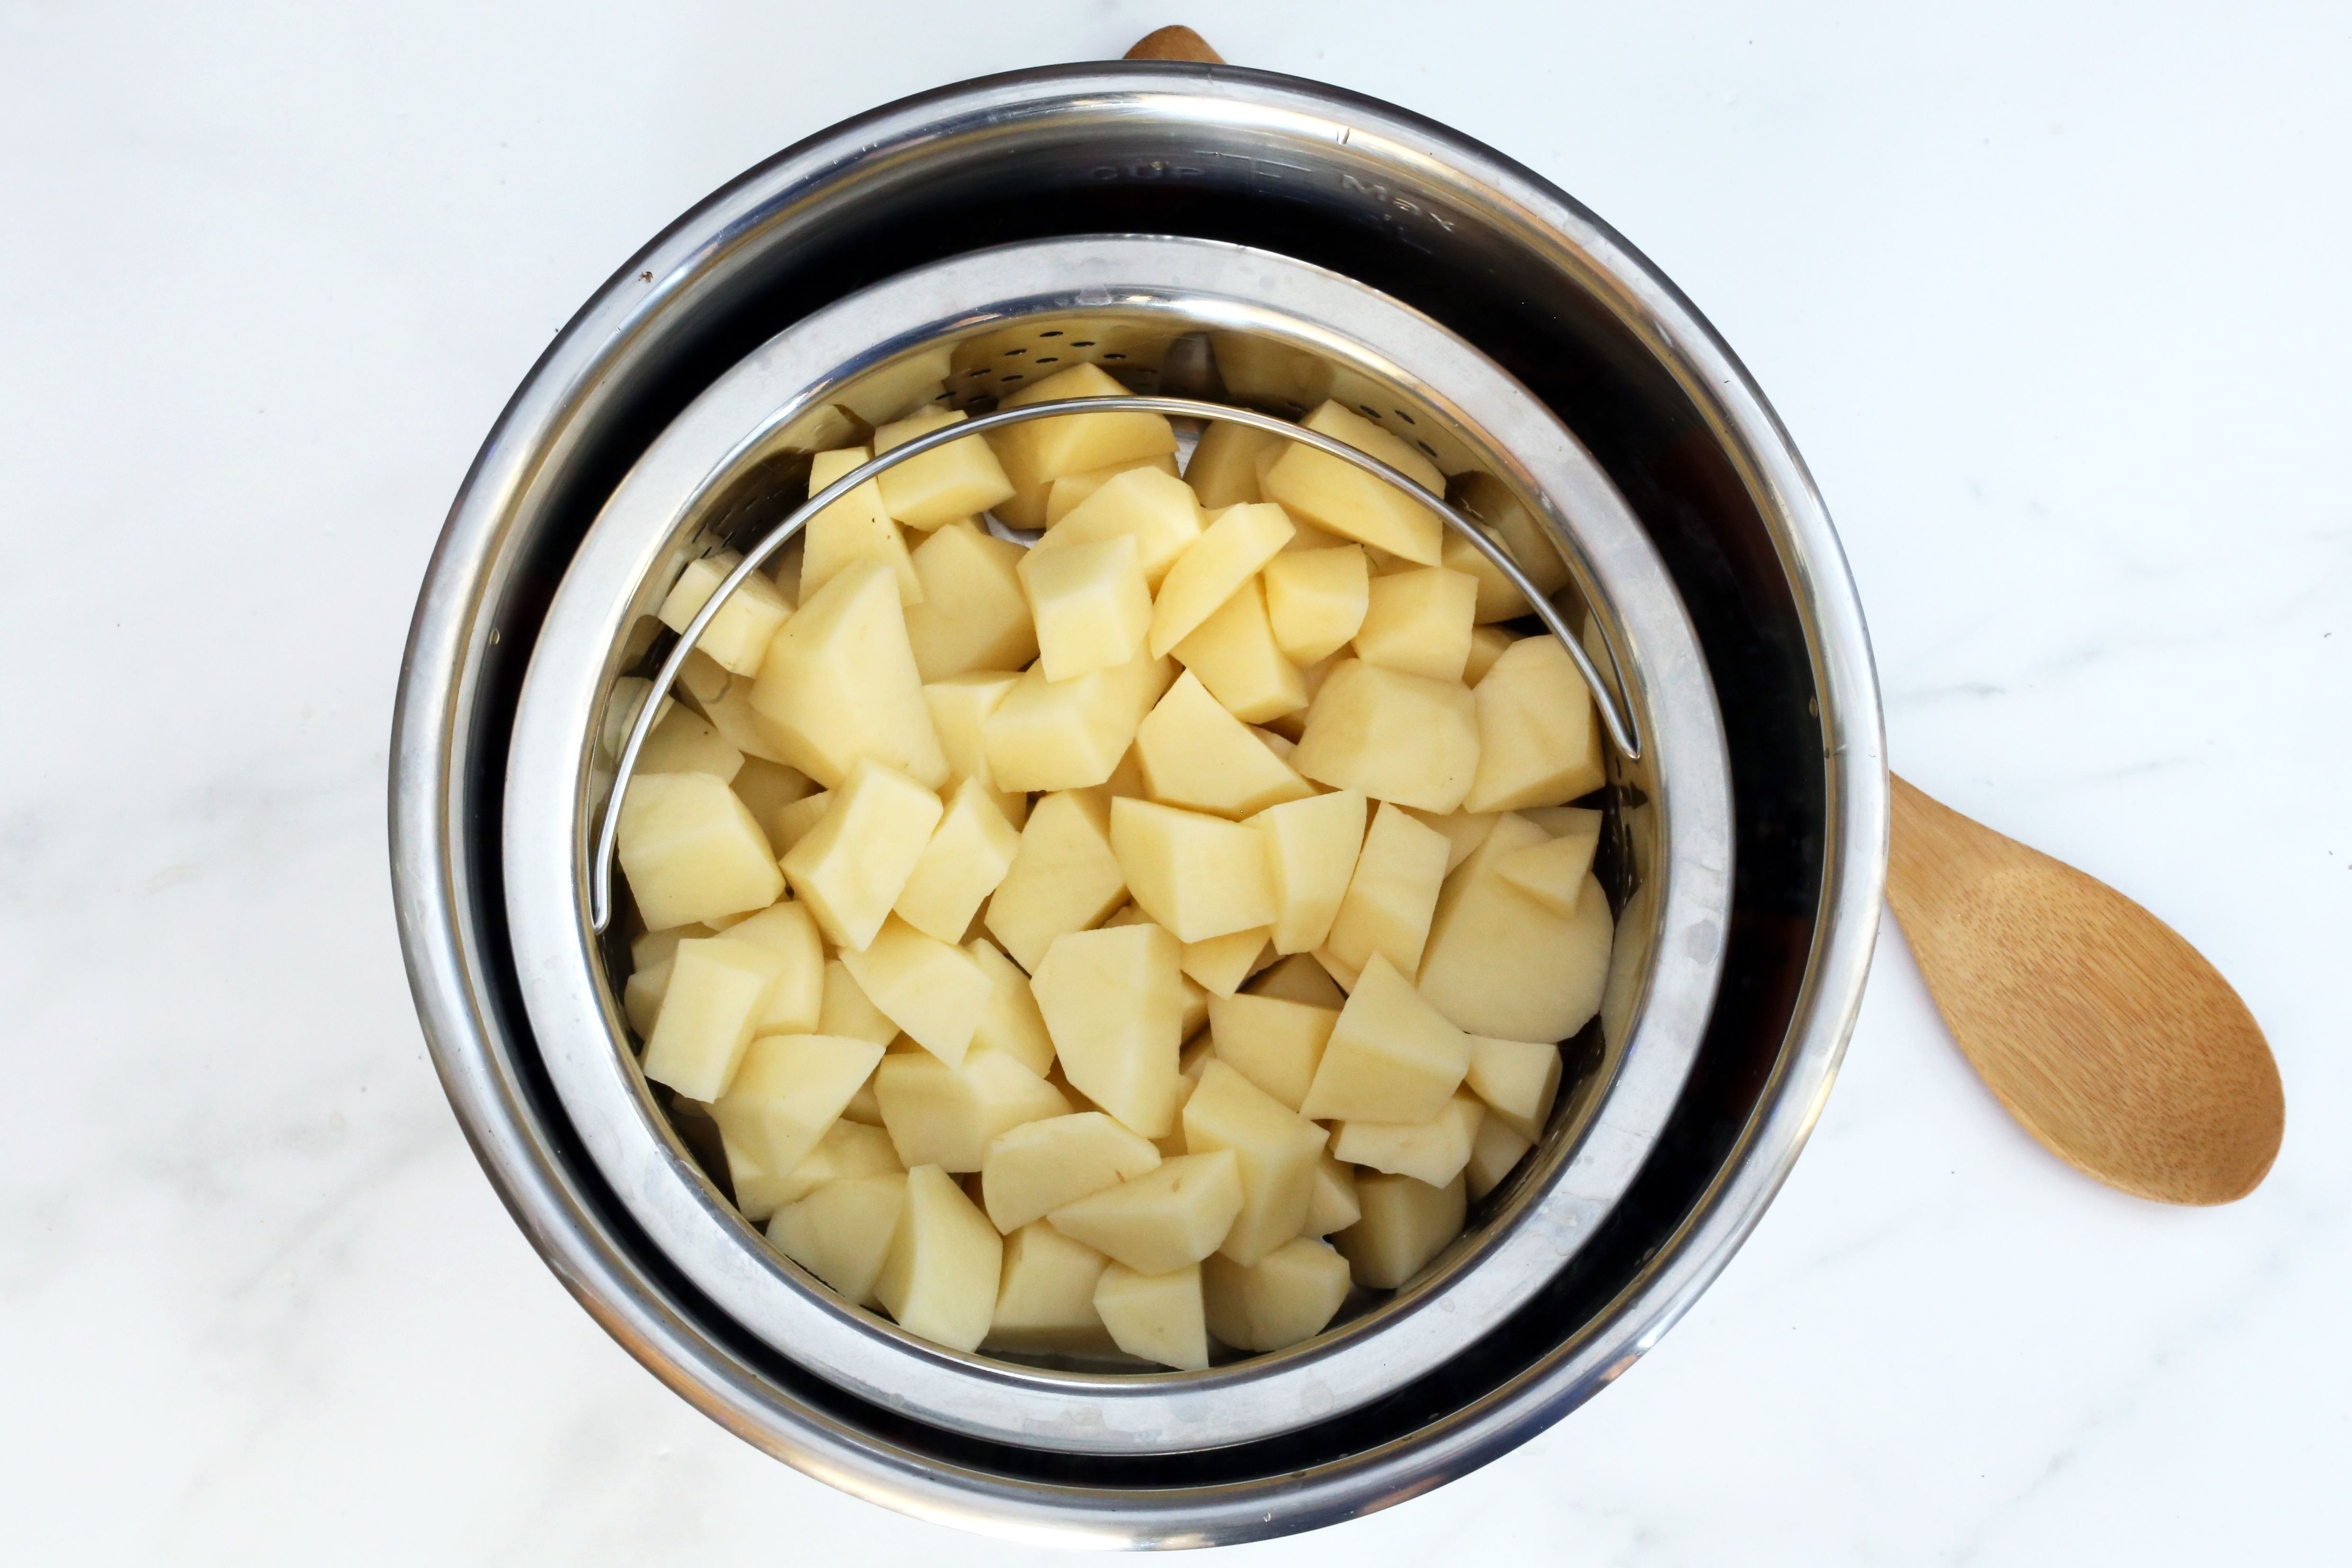 Add the steam basket and potatoes to the pot